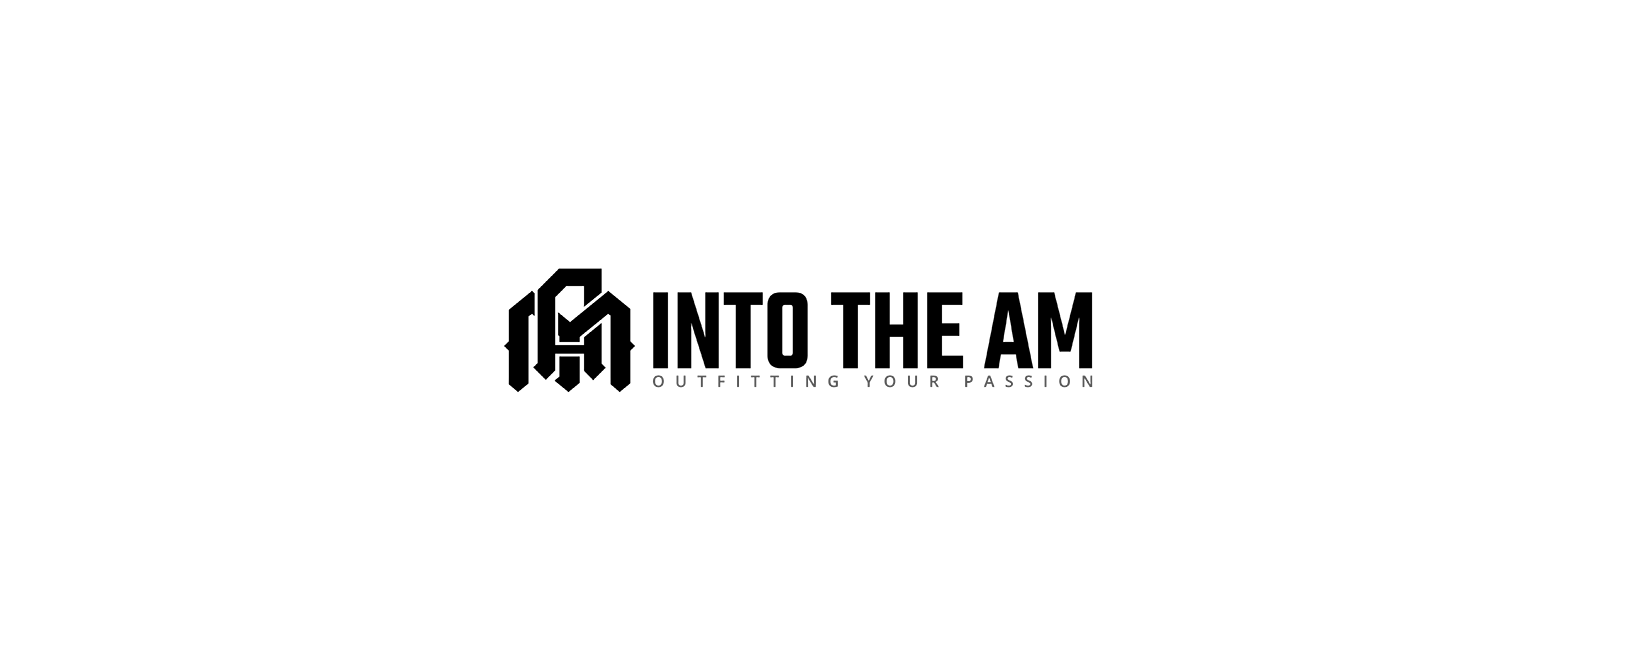 INTO THE AM Discount Code 2021